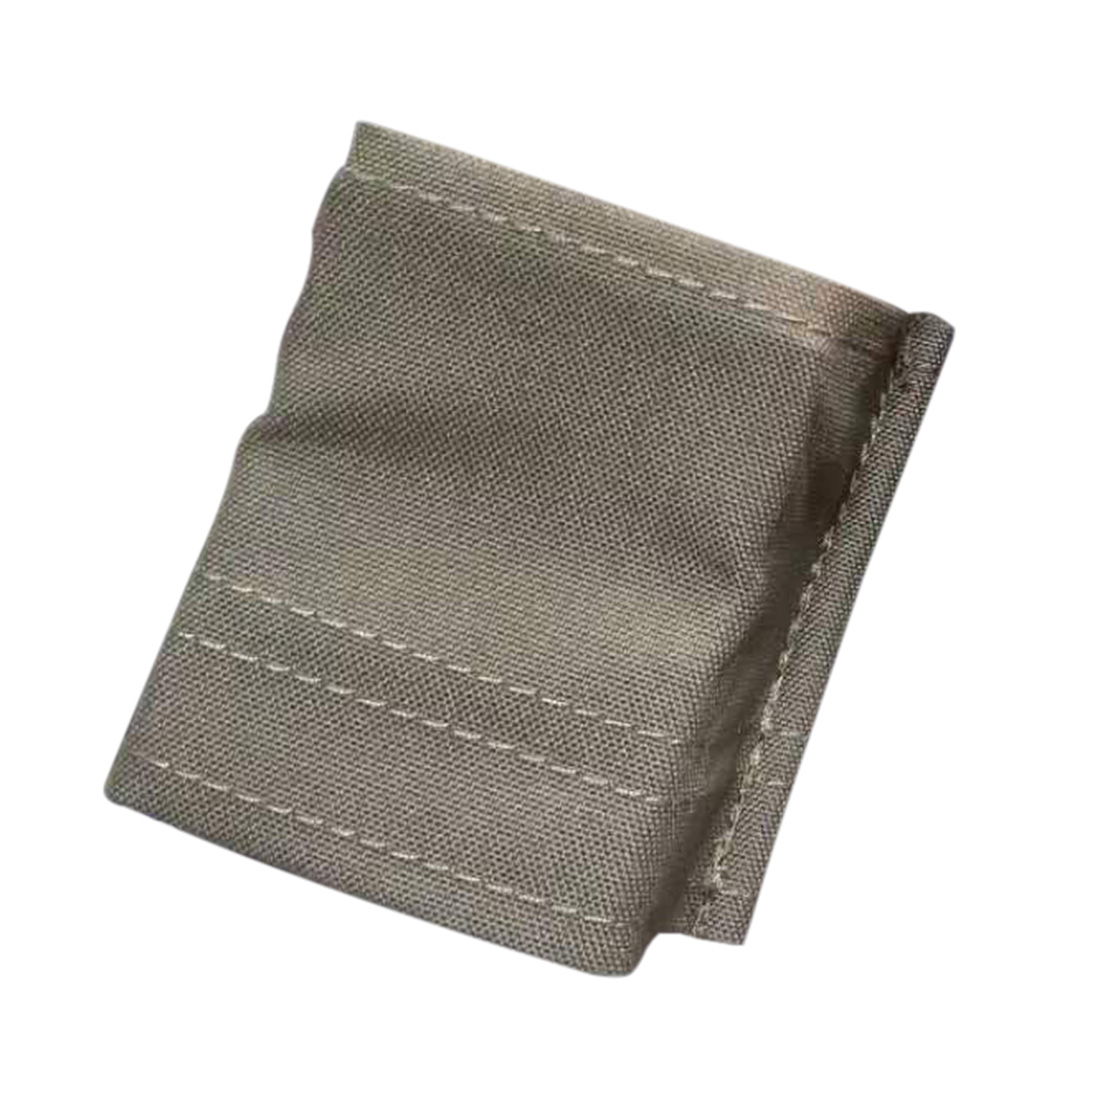 KYWI 556 Single Magazine Pouch Outdoor Hunting Game Equipment